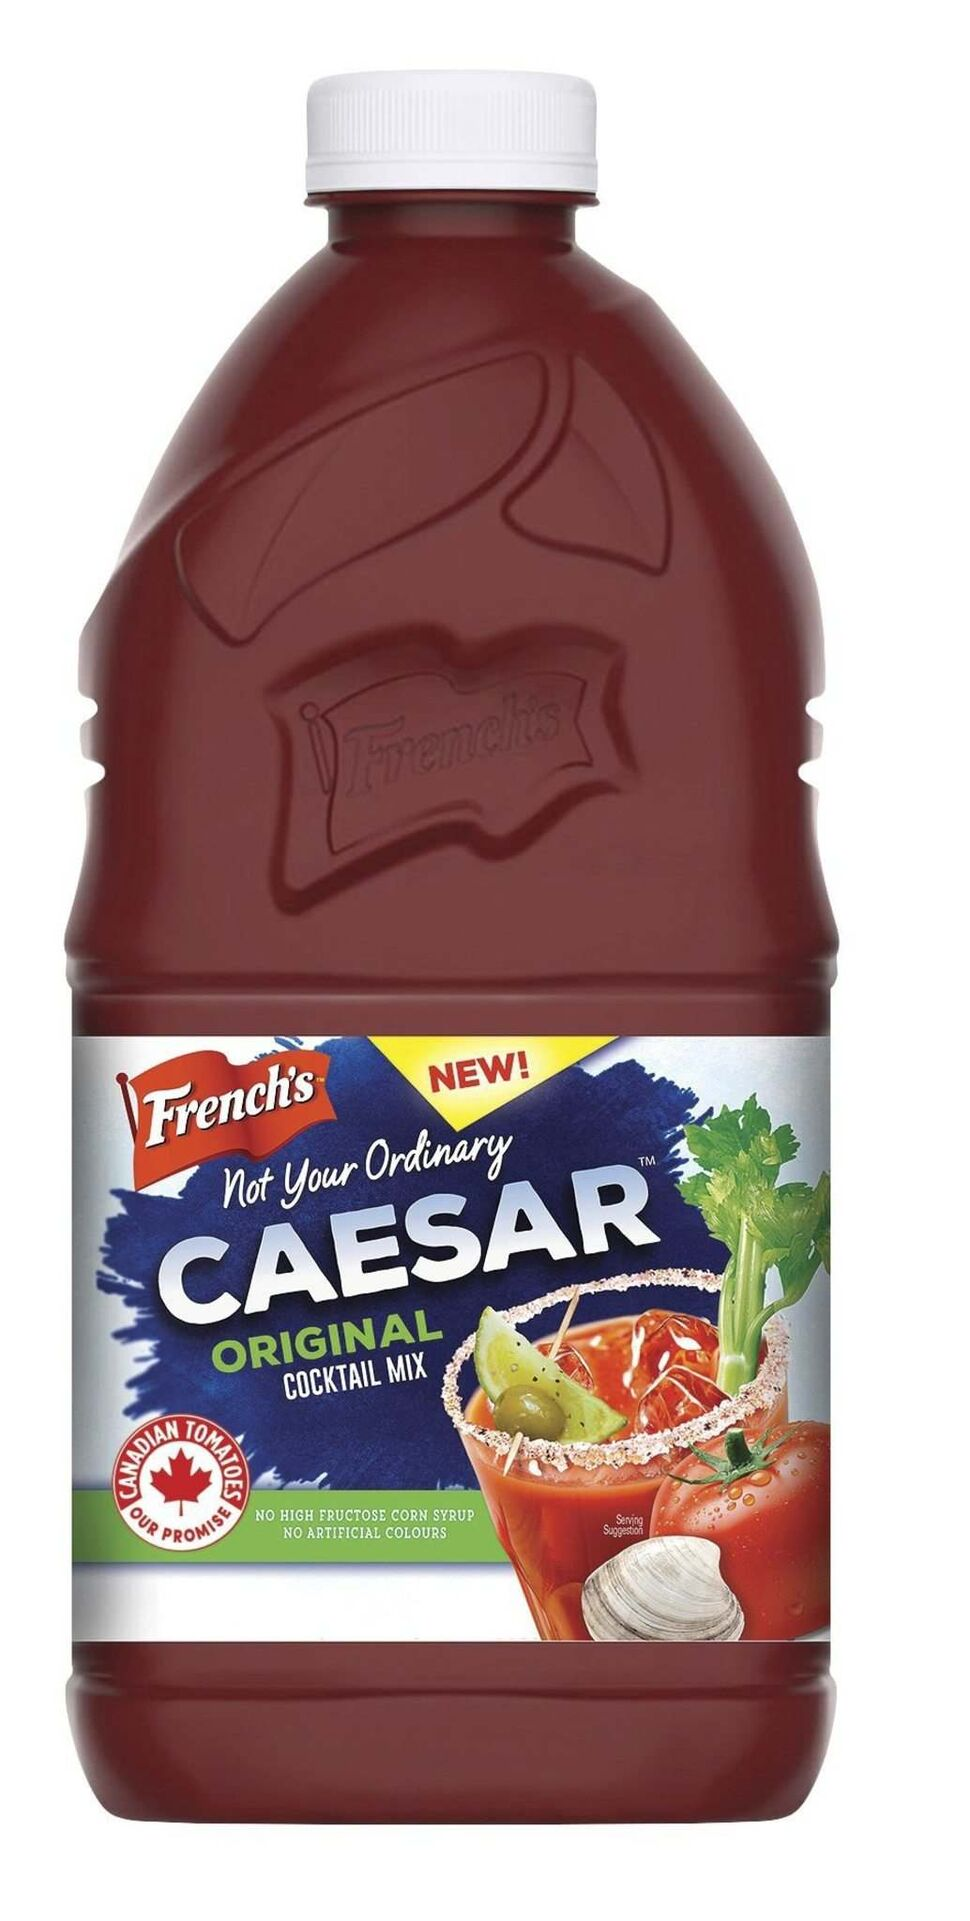 """<strong>French's Not Your Ordinary Caesar cocktail mix</strong> (around $3.49-$4.49/1.89-litre bottle)</p><p><strong>The skinny:</strong> New to the market — and, says a press release, a """"fitting tribute to Canada's 150"""" thanks to it being """"produced in Canada with 100 per cent Canadian-grown tomatoes."""" Also comes in a """"Fully Loaded"""" flavour.</p><p><strong>On its own:</strong> The French's is visibly a little thicker than the Mott's, but not nearly as dense as the Walter. Aromatically it's quite pleasant, with tomato and steak-spice notes as well as underlying bell pepper and clam notes. Ripe, almost-sweet tomato notes show nicely on the palate, with subtle celery salt, clam and pepper notes and a moderately thick texture.</p><p><strong>In a Caesar:</strong> The balance of spice and tomato flavours works well, the clam flavours are subtle and generally things are pretty savoury here.</p><p><strong>Overall impression:</strong> If you like more savoury than seafood in your Caesar, this is a nice alternative to the Mott's for the same price.</p>"""